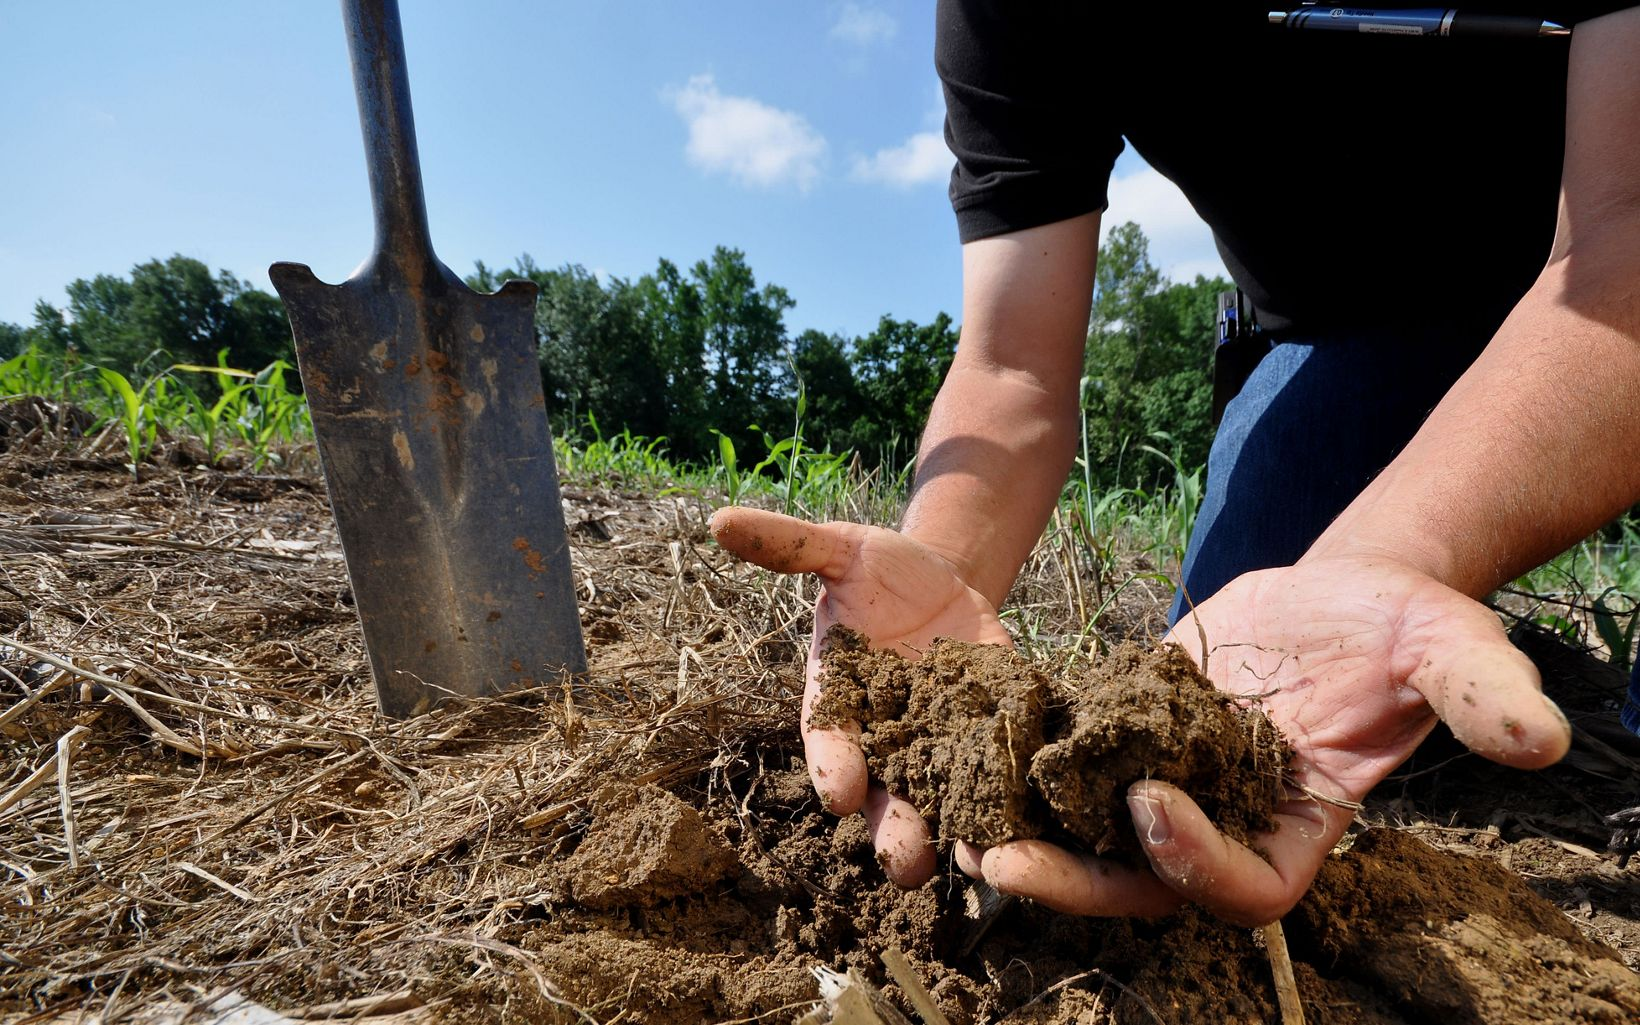 Soil is one of the most biologically diverse ecosystems on Earth. It also produces 95 percent of our food, filters our drinking water and reduces the impact of climate change.